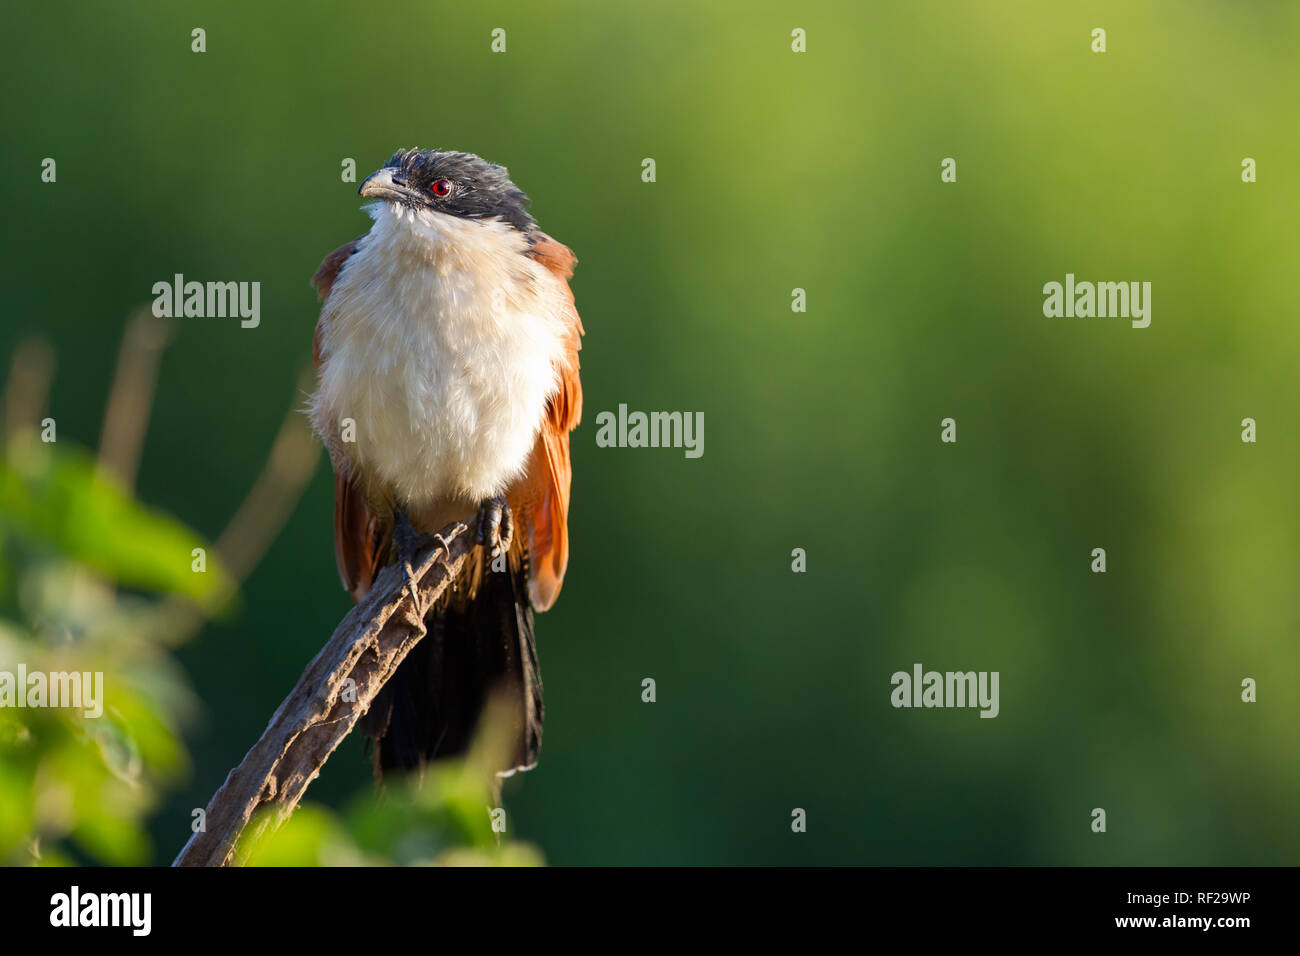 Burchell's Coucal, Centropus burchelli, has bubbling call, frequently herd in the bush around Kruger National Park, Limpopo Province, South Africa. - Stock Image